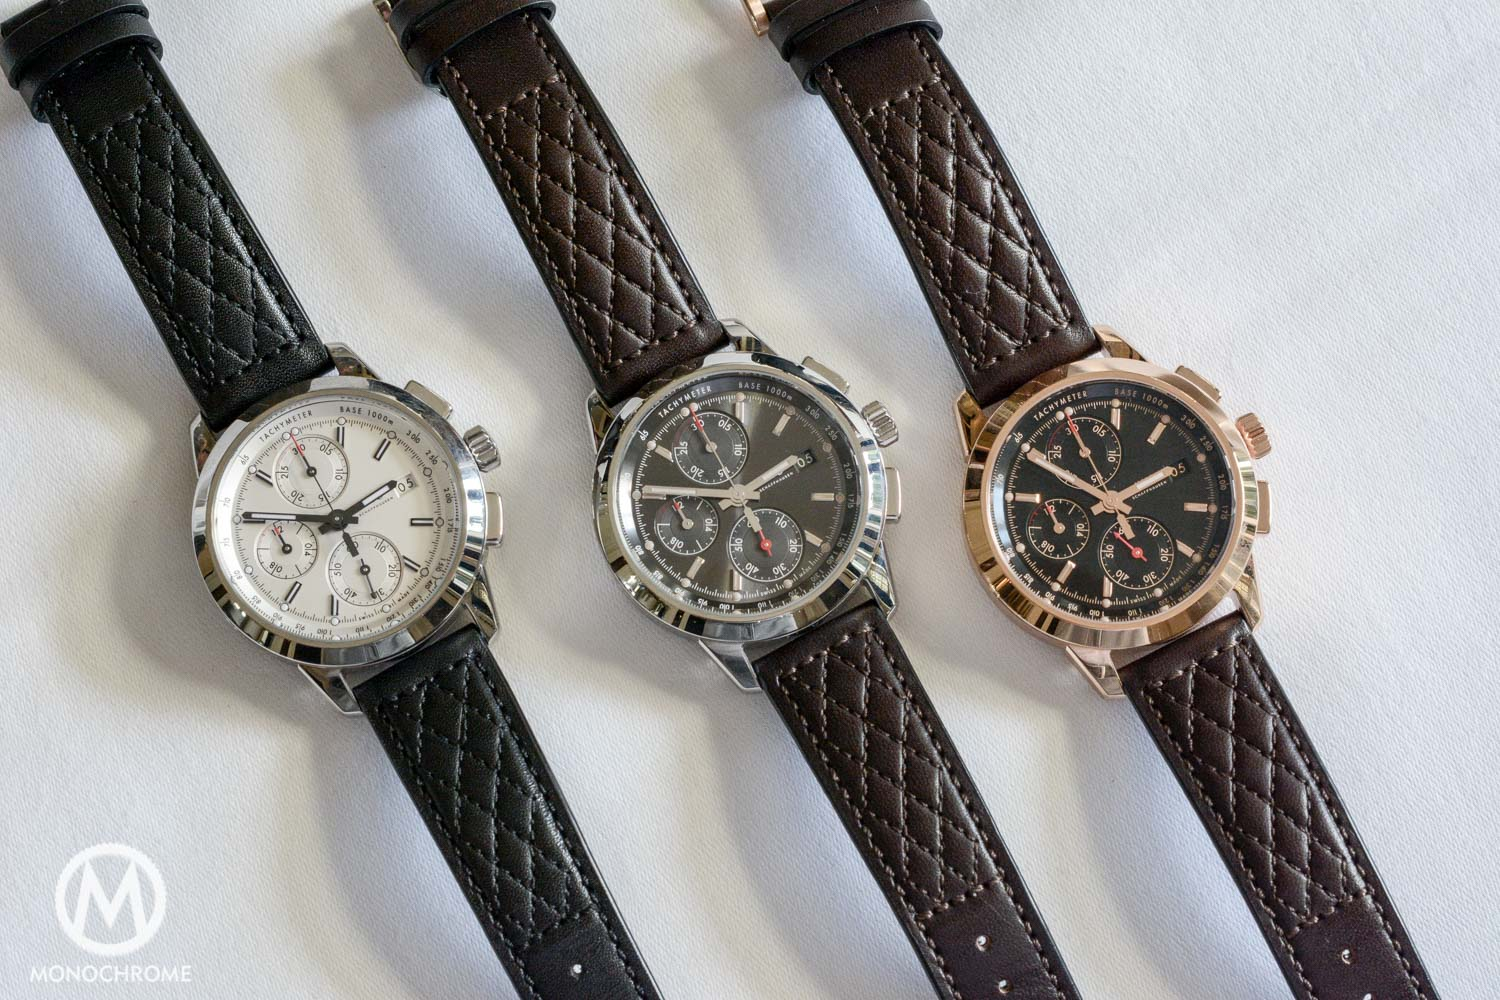 IWC Ingenieur Chronograph Vintage Editions